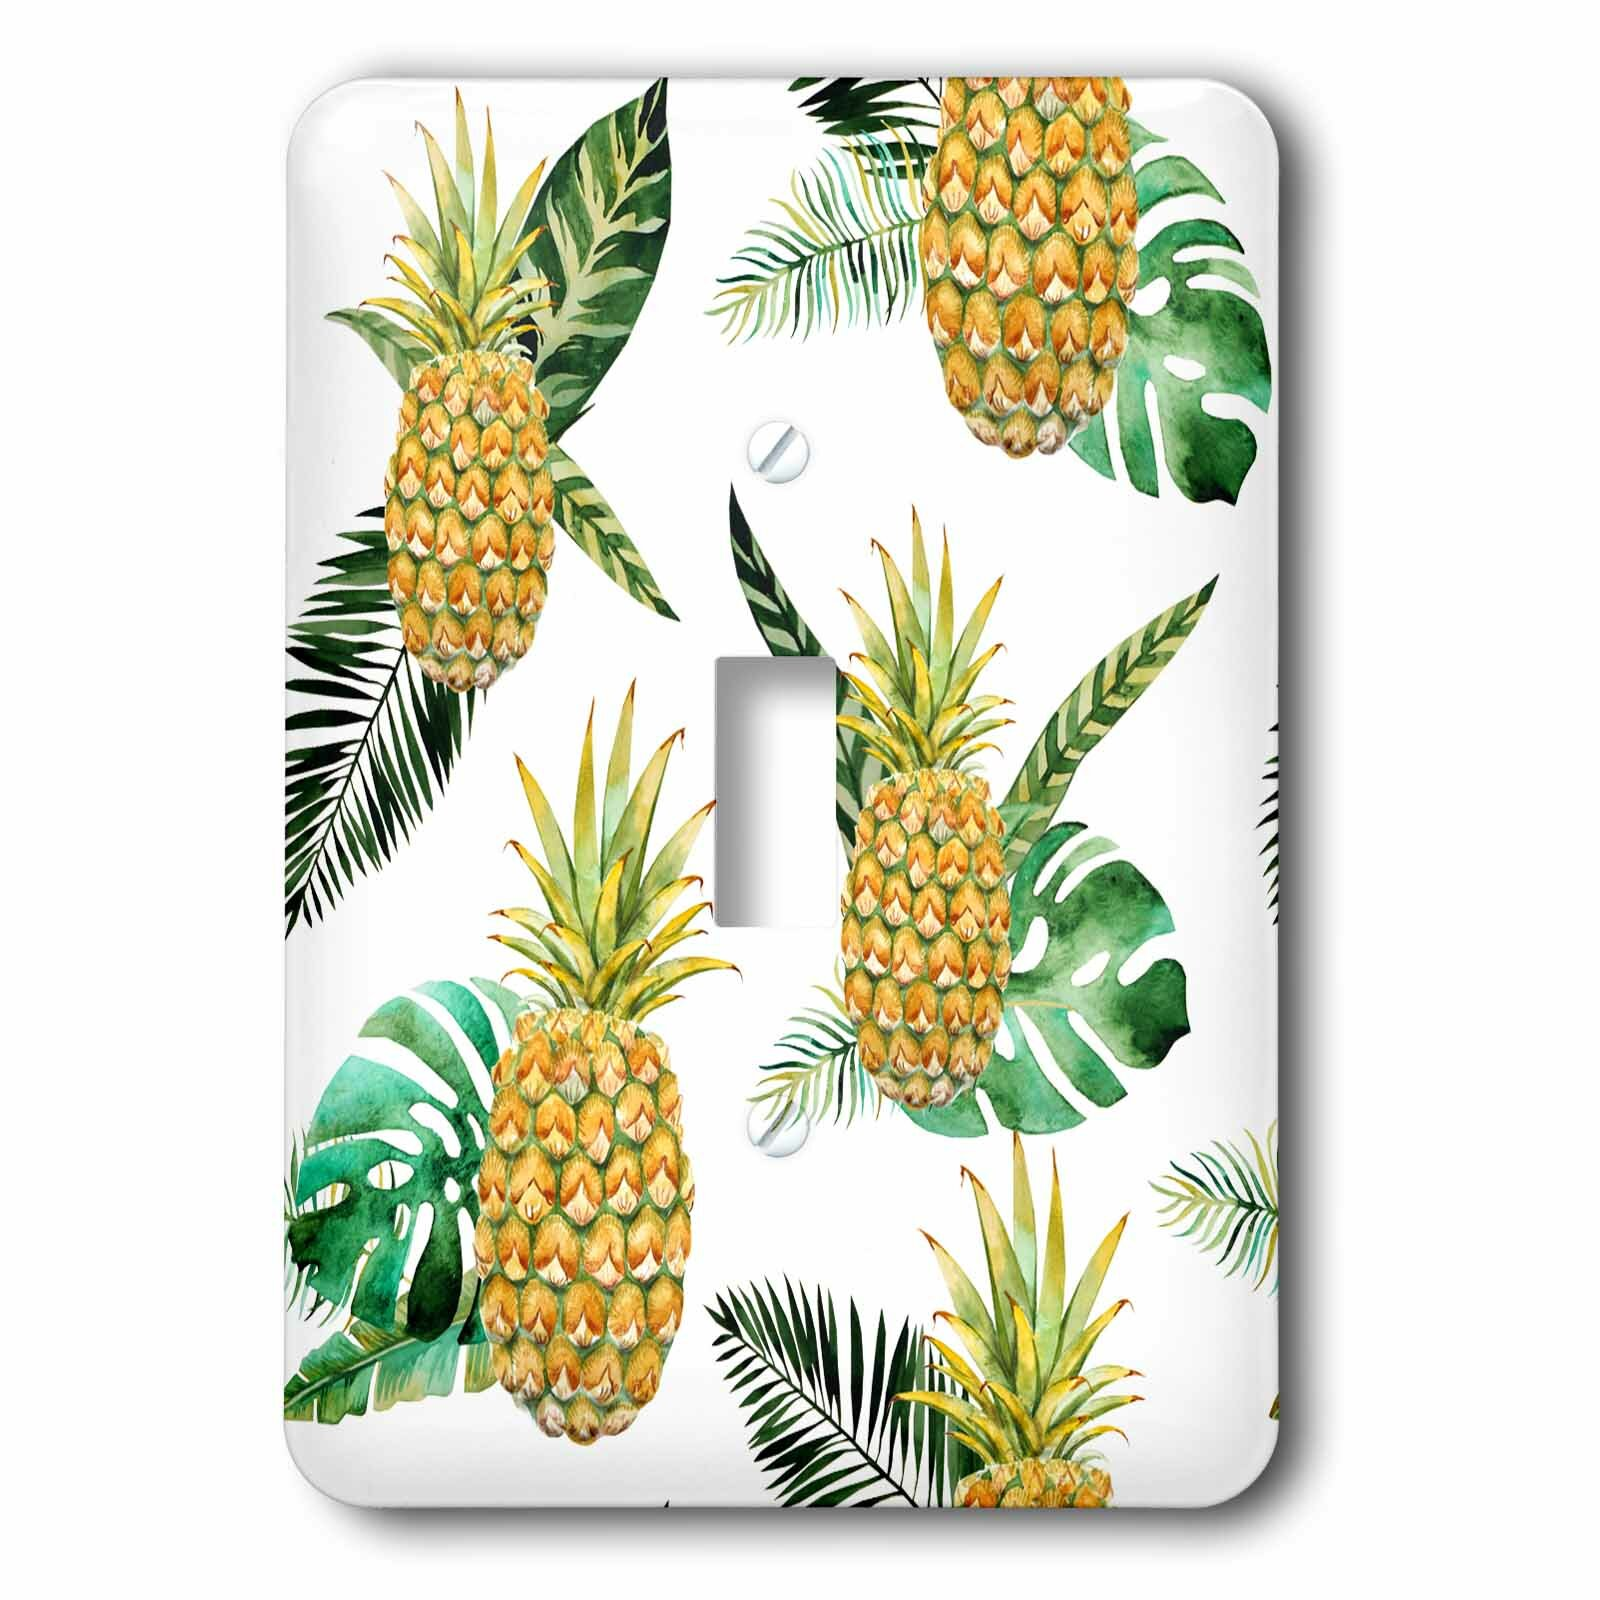 3drose Tropical Pineapple 1 Gang Toggle Light Switch Wall Plate Wayfair